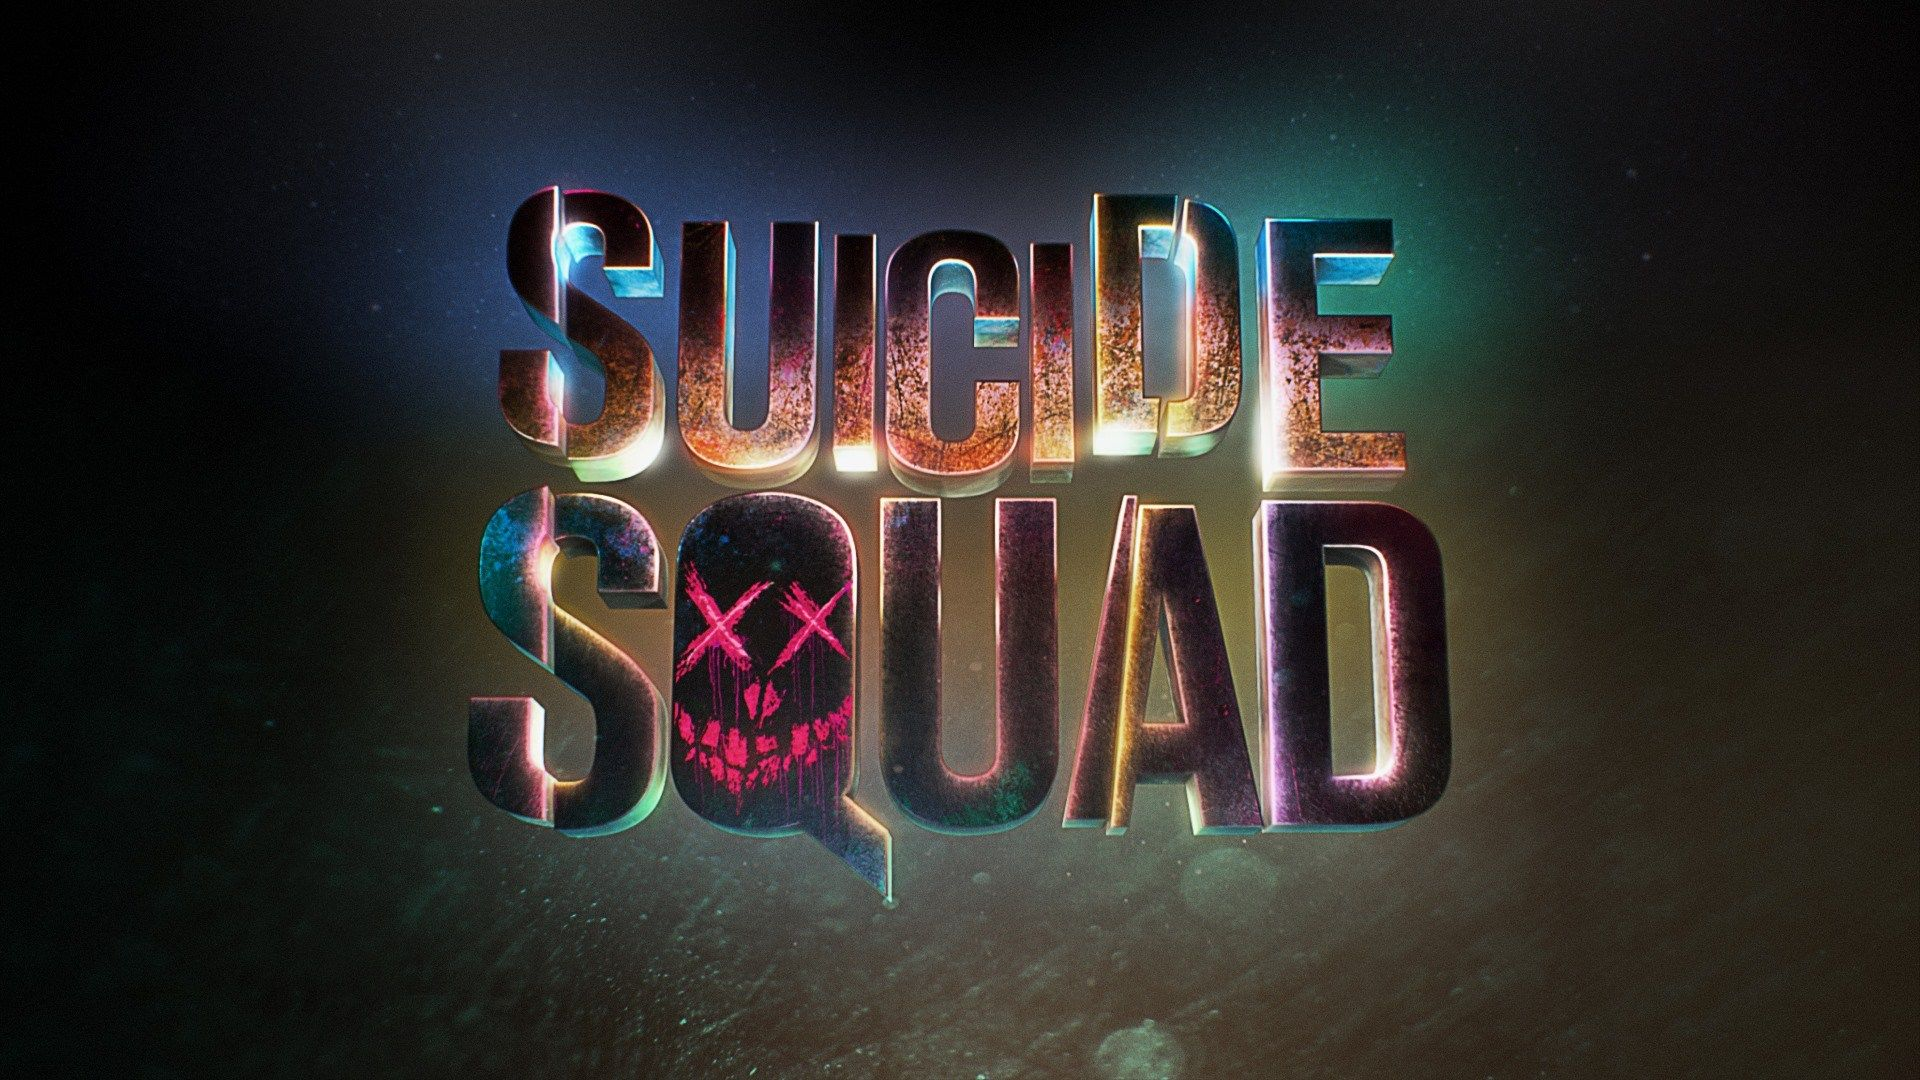 Margot Robbie does her own motorcycle stunt in latest 'Suicide Squad' set photos